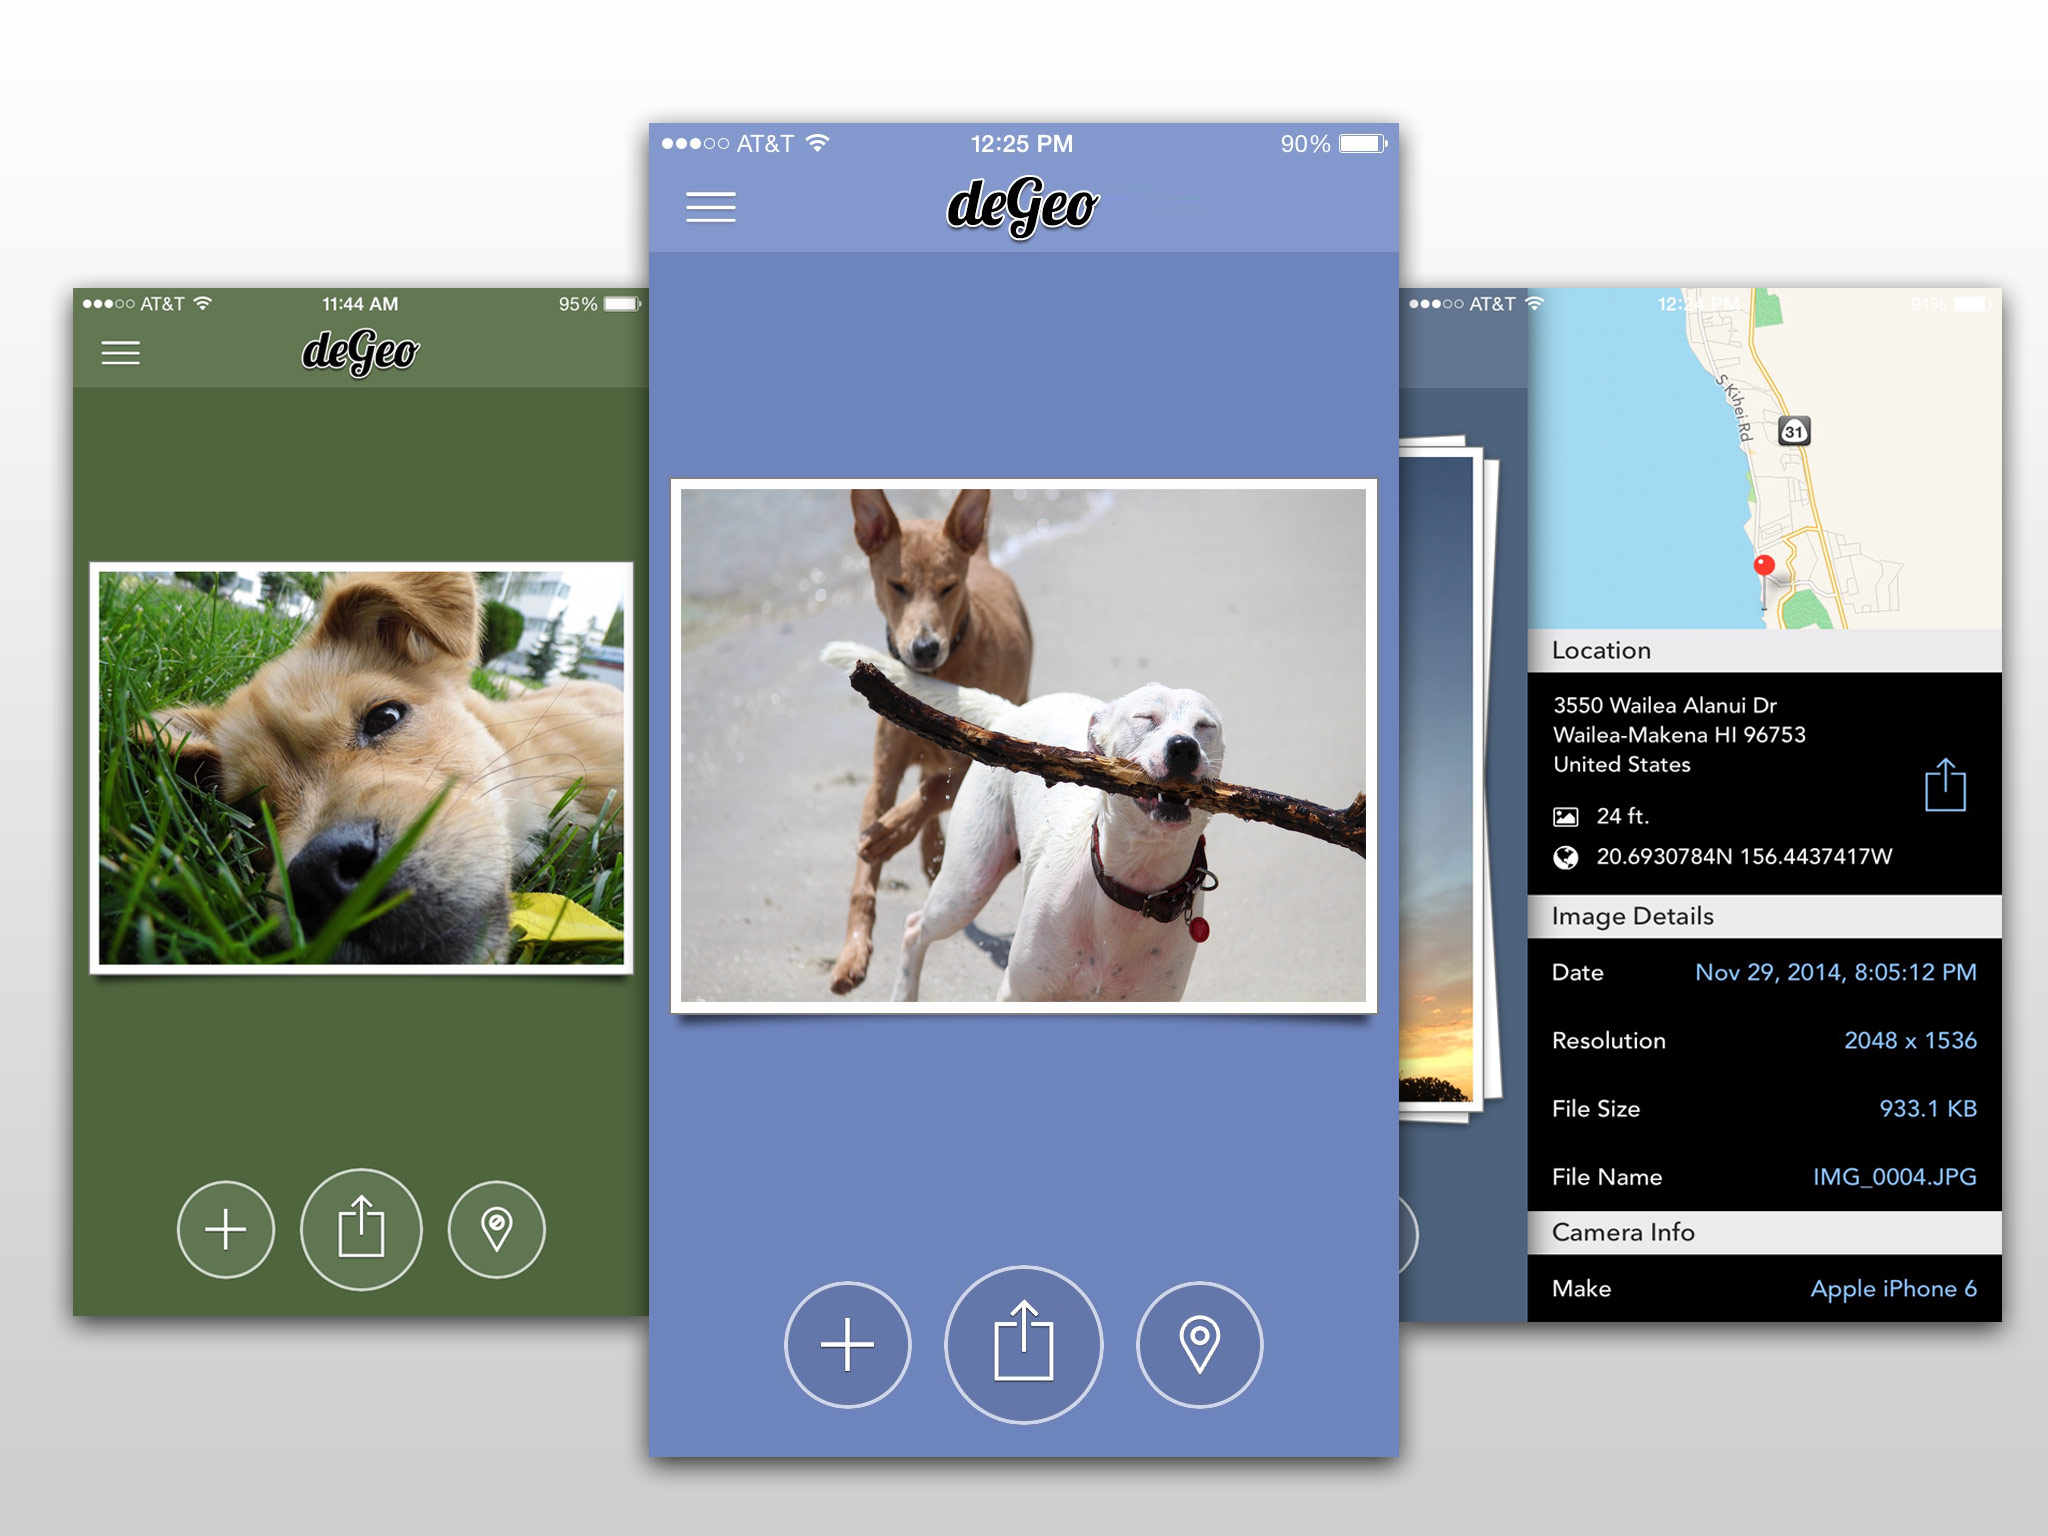 Share Safely When Posting Photos On Social Media